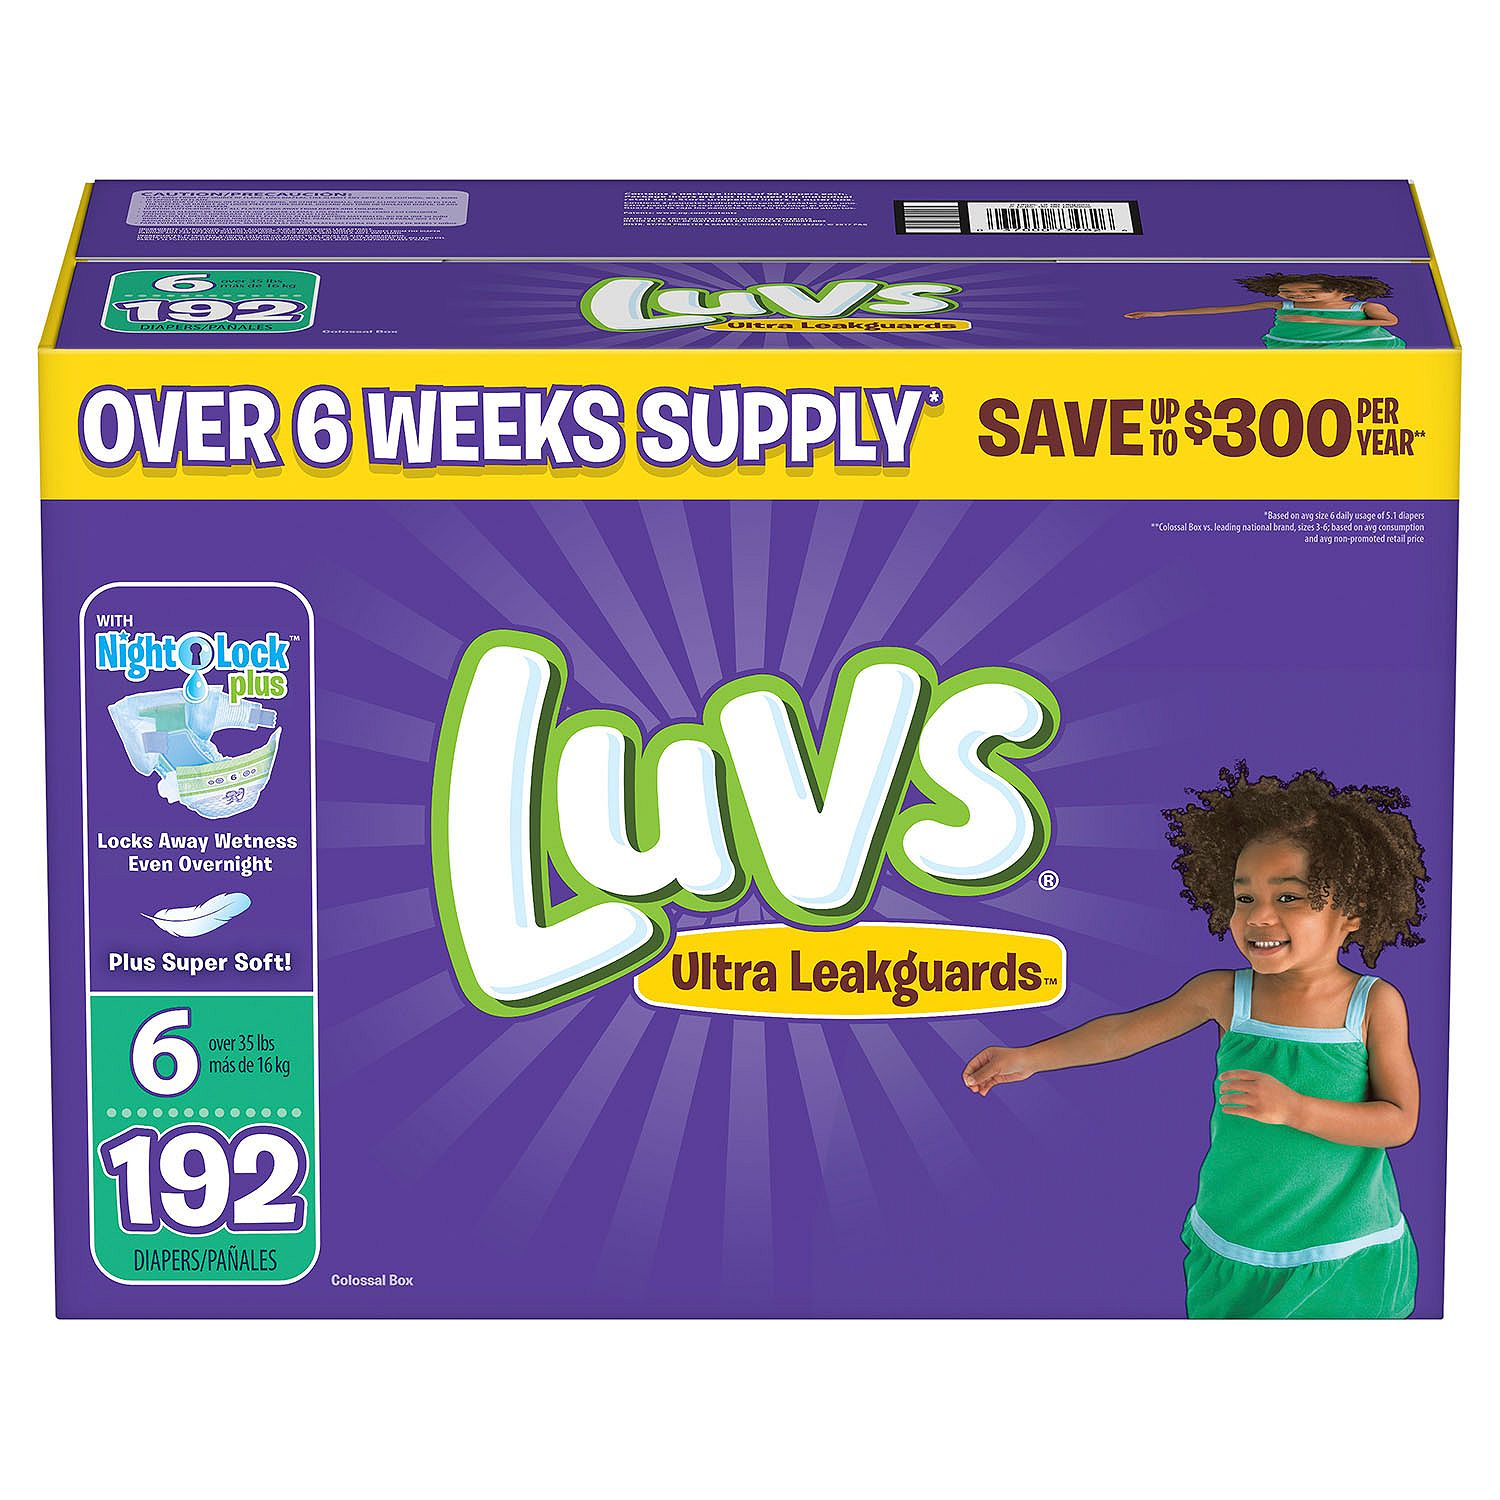 Luvs Ultra Leakguards Diapers Size Size 6 - 192 ct. - Bulk Qty, Free Shipping - Comfortable, Soft, No leaking & Good nite Diapers